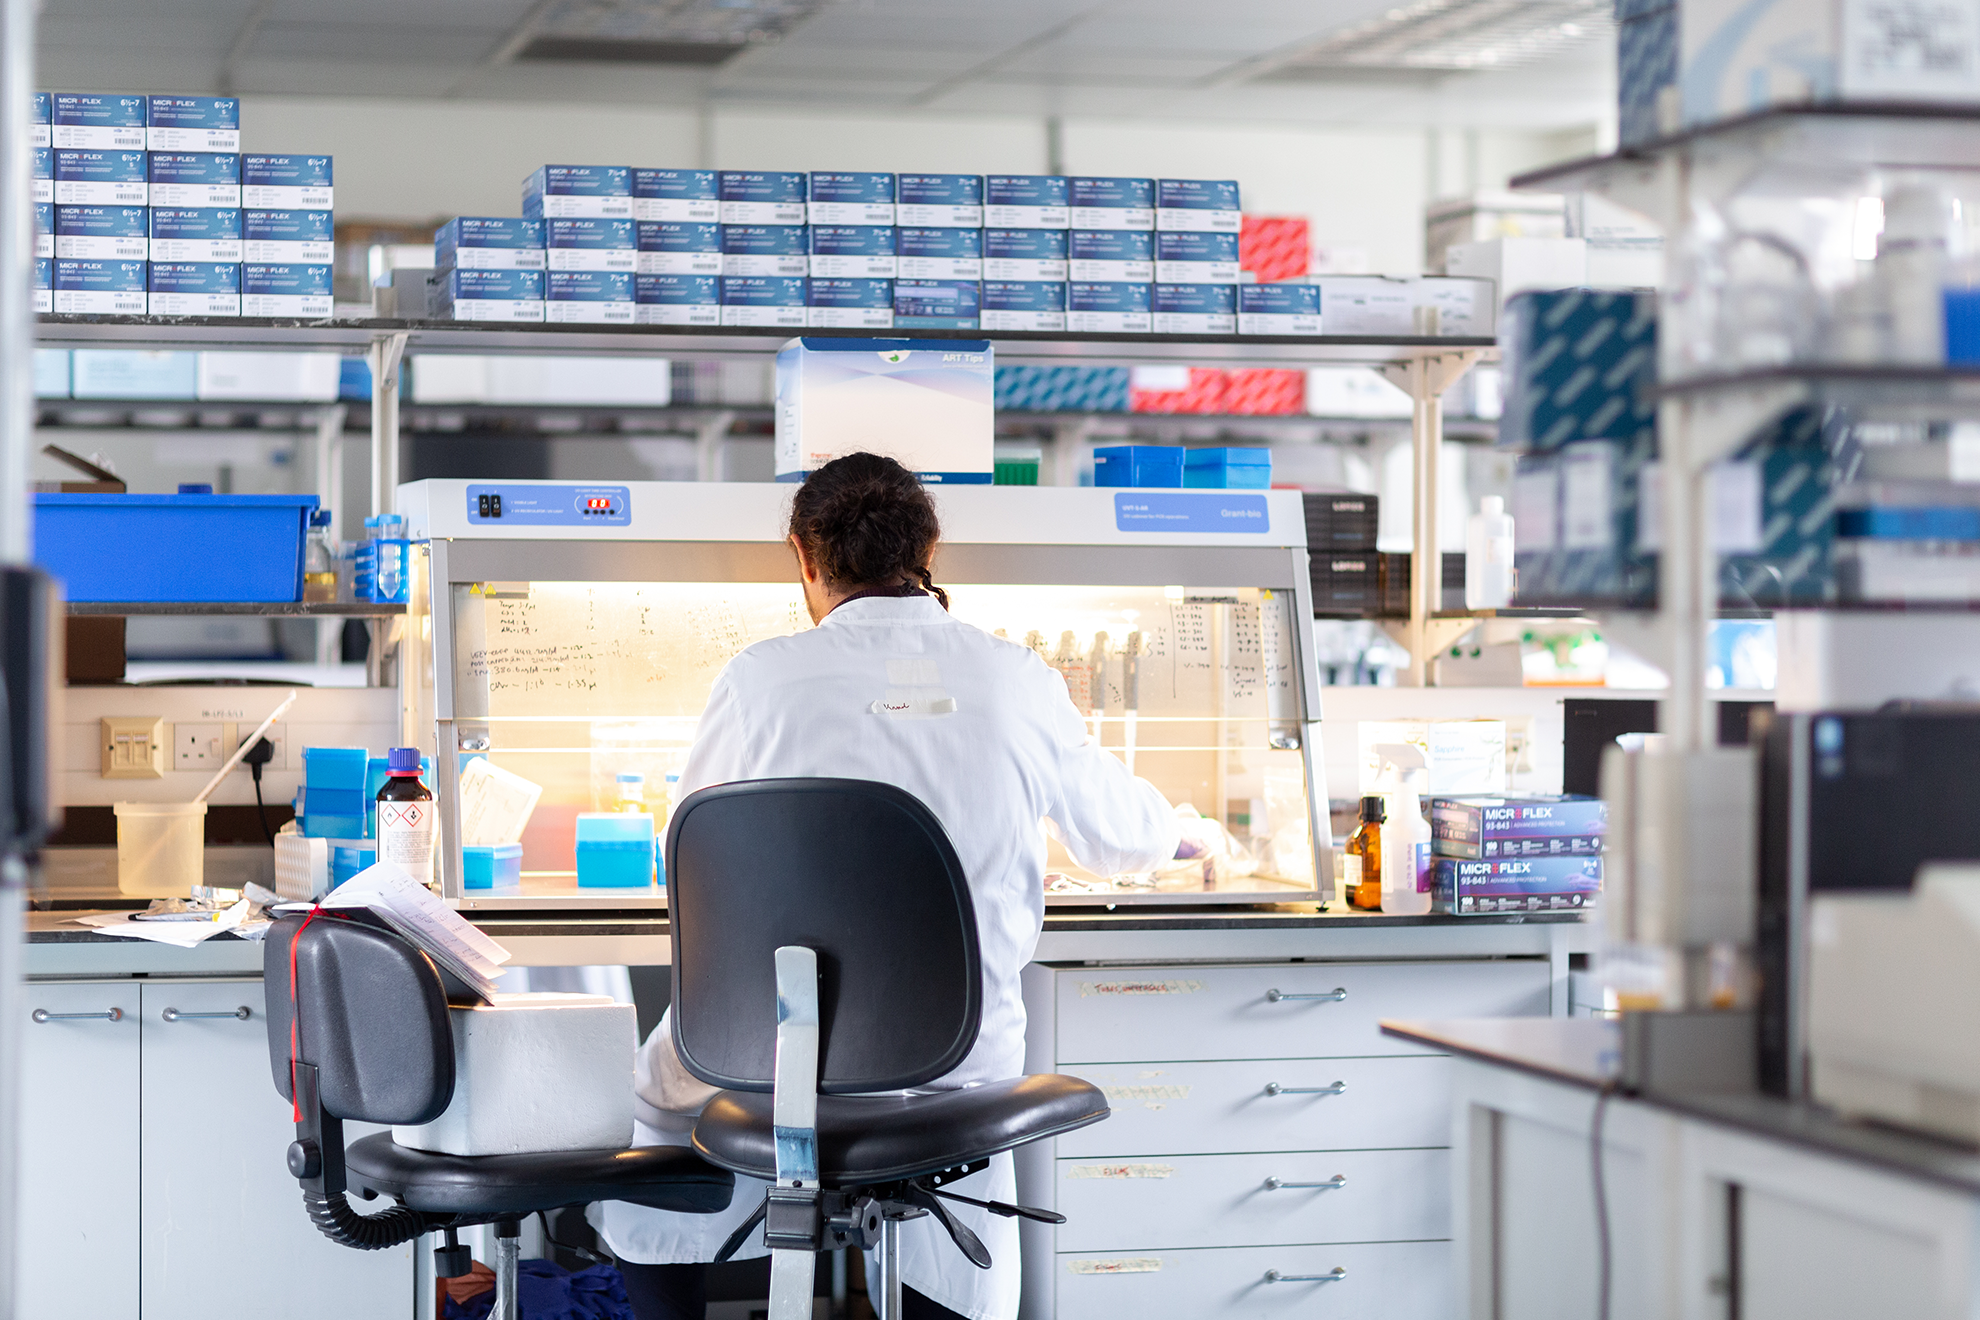 Person sitting in a chair working at a lab station